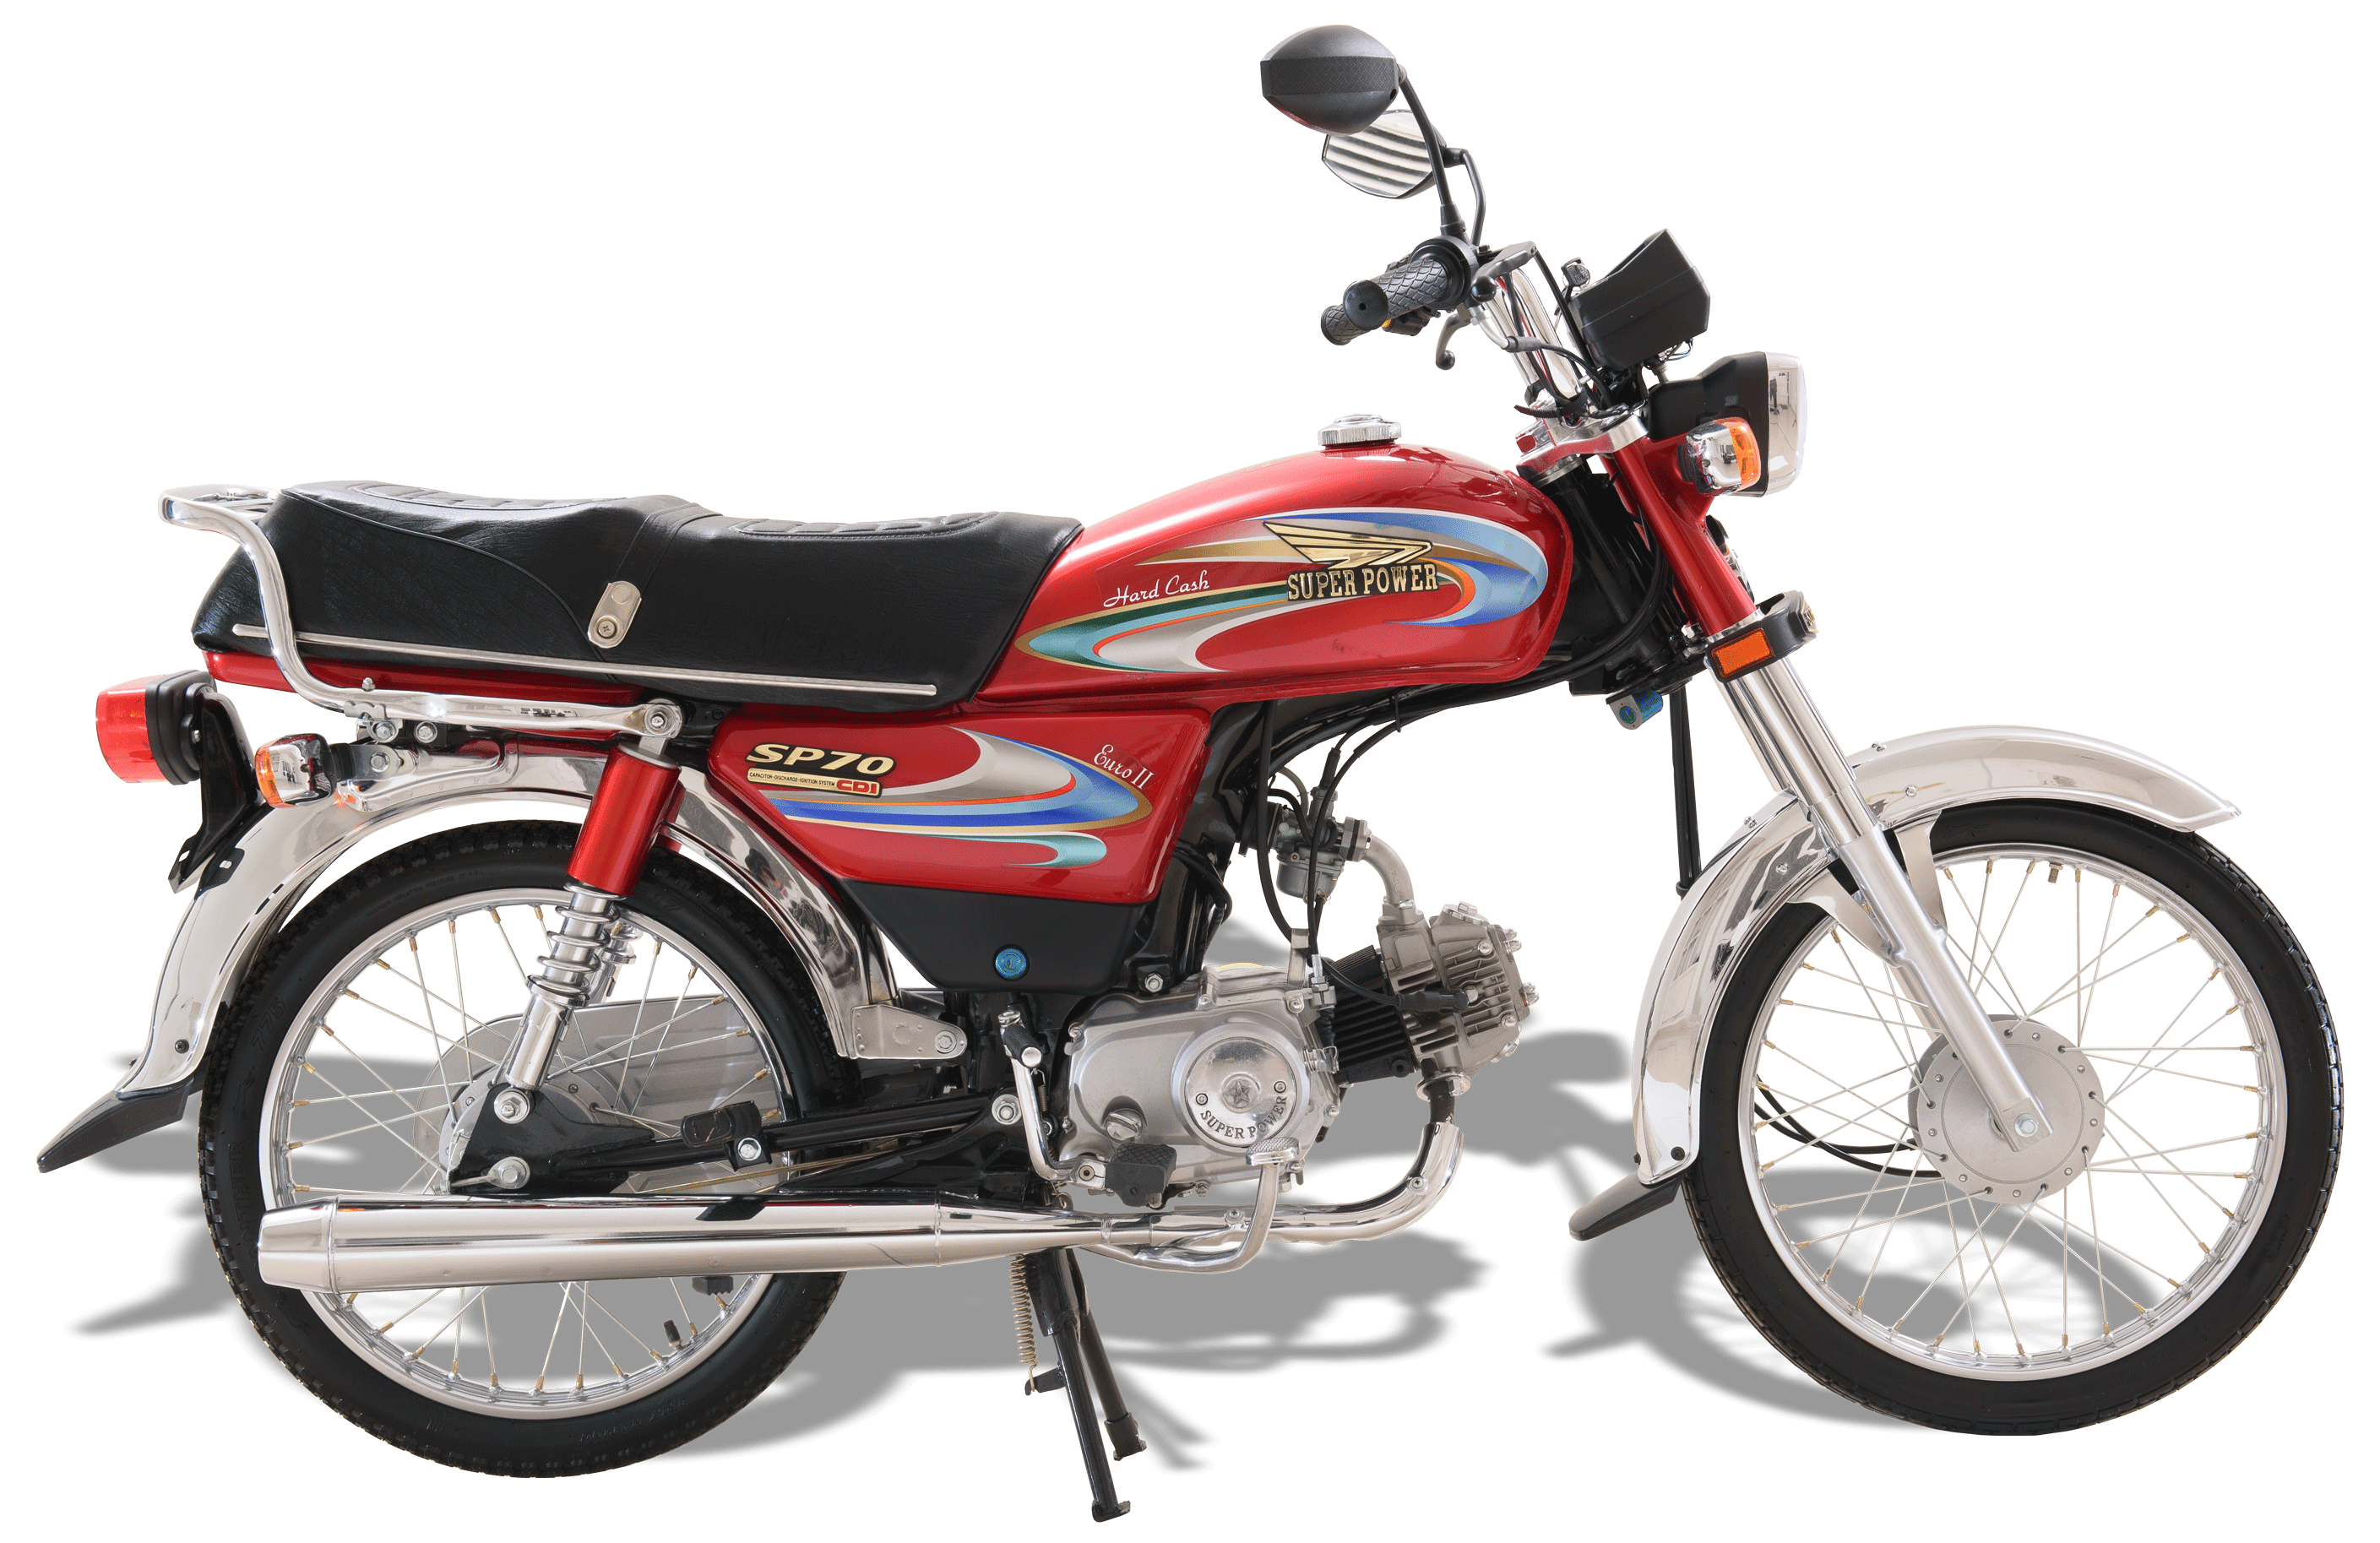 Super Power SP70 2021 Model New Shape Price and Images Technical Specs Reviews